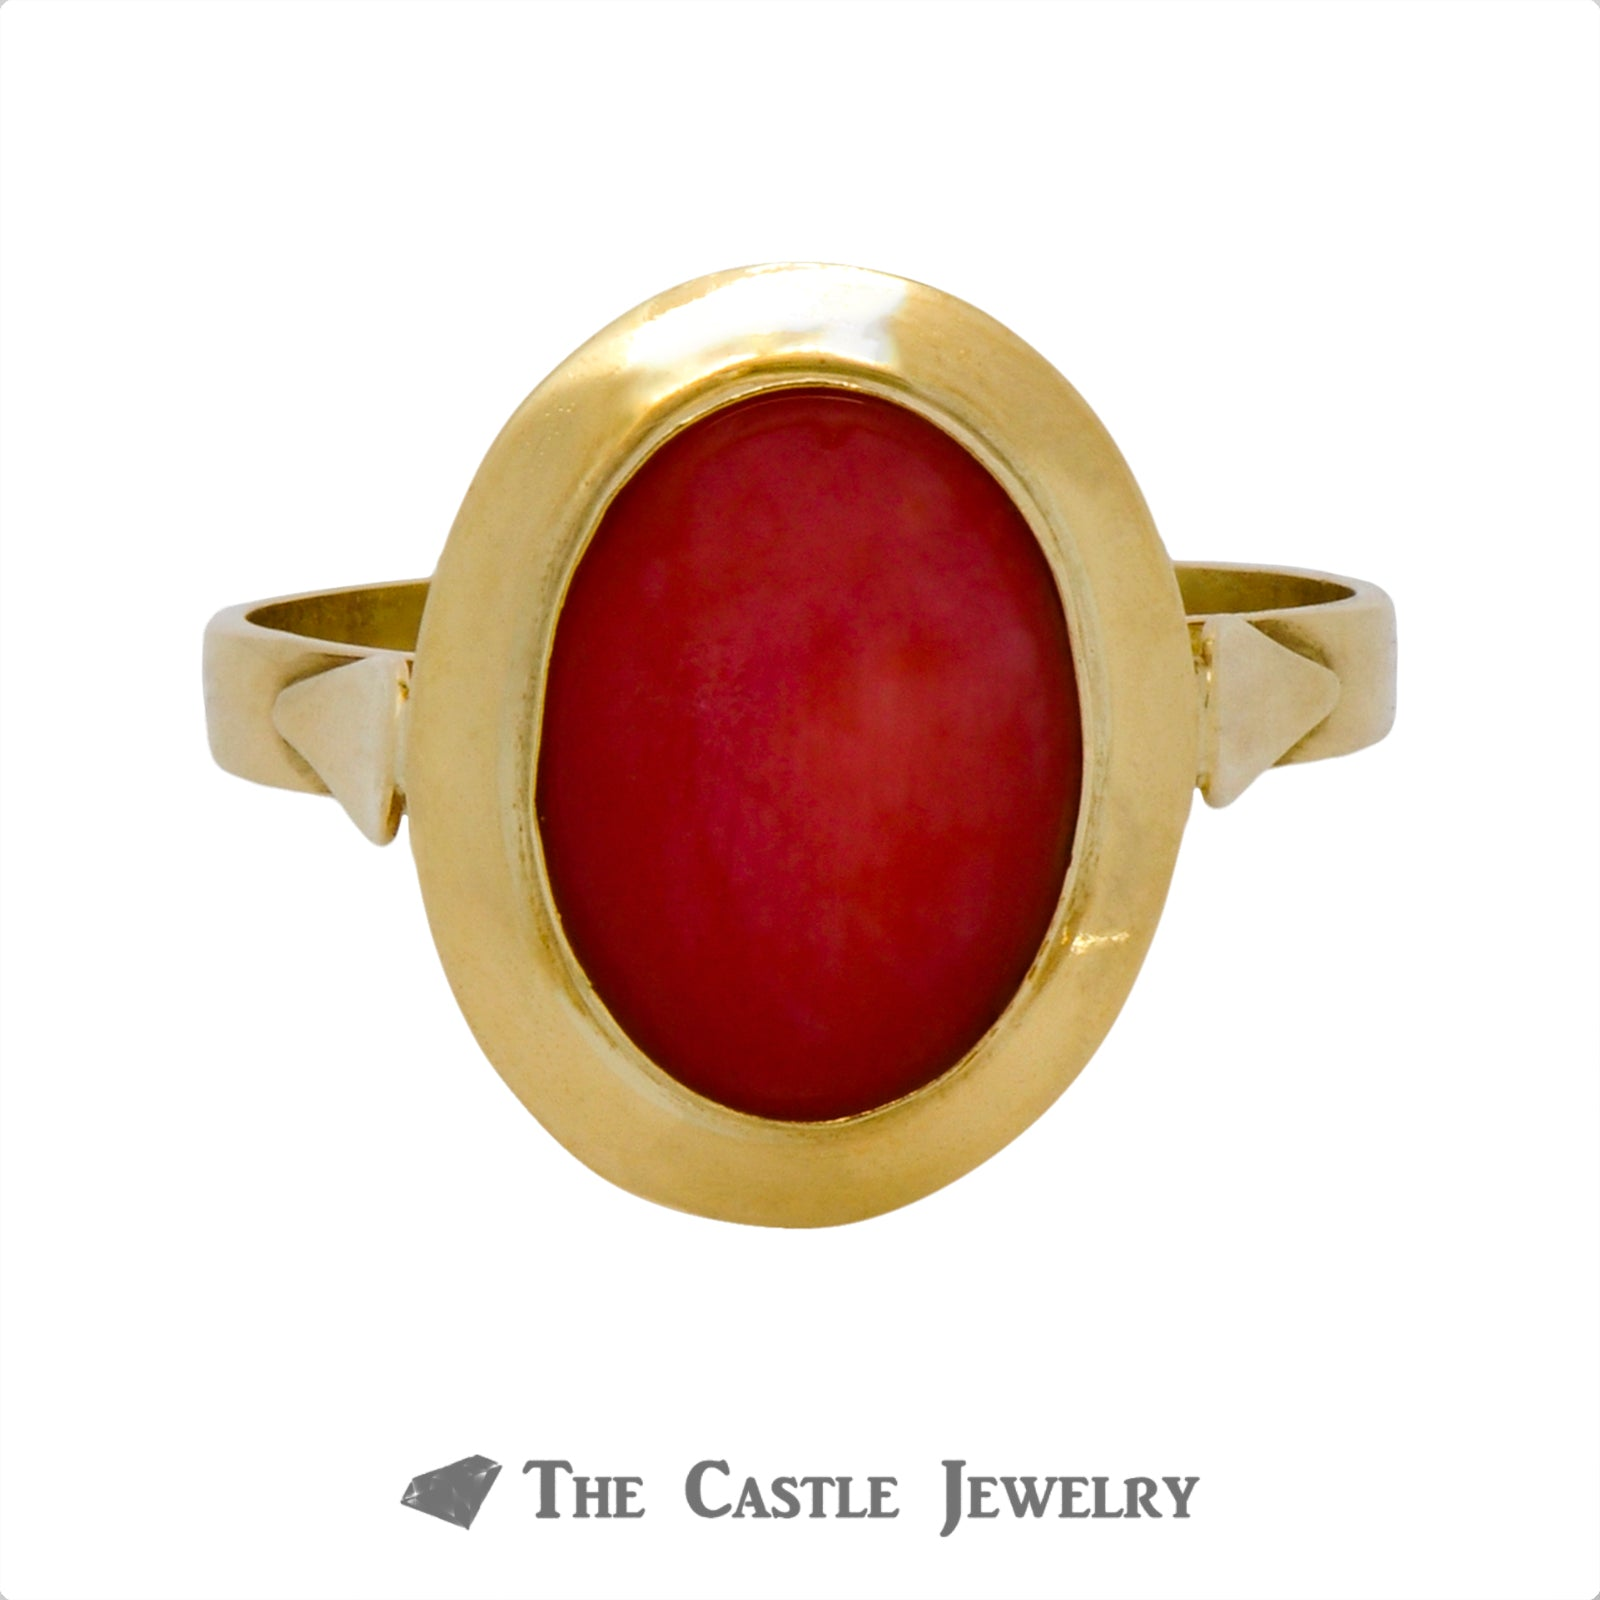 Oval Cut Coral Ring with Polished Bezel in 18k Yellow Gold